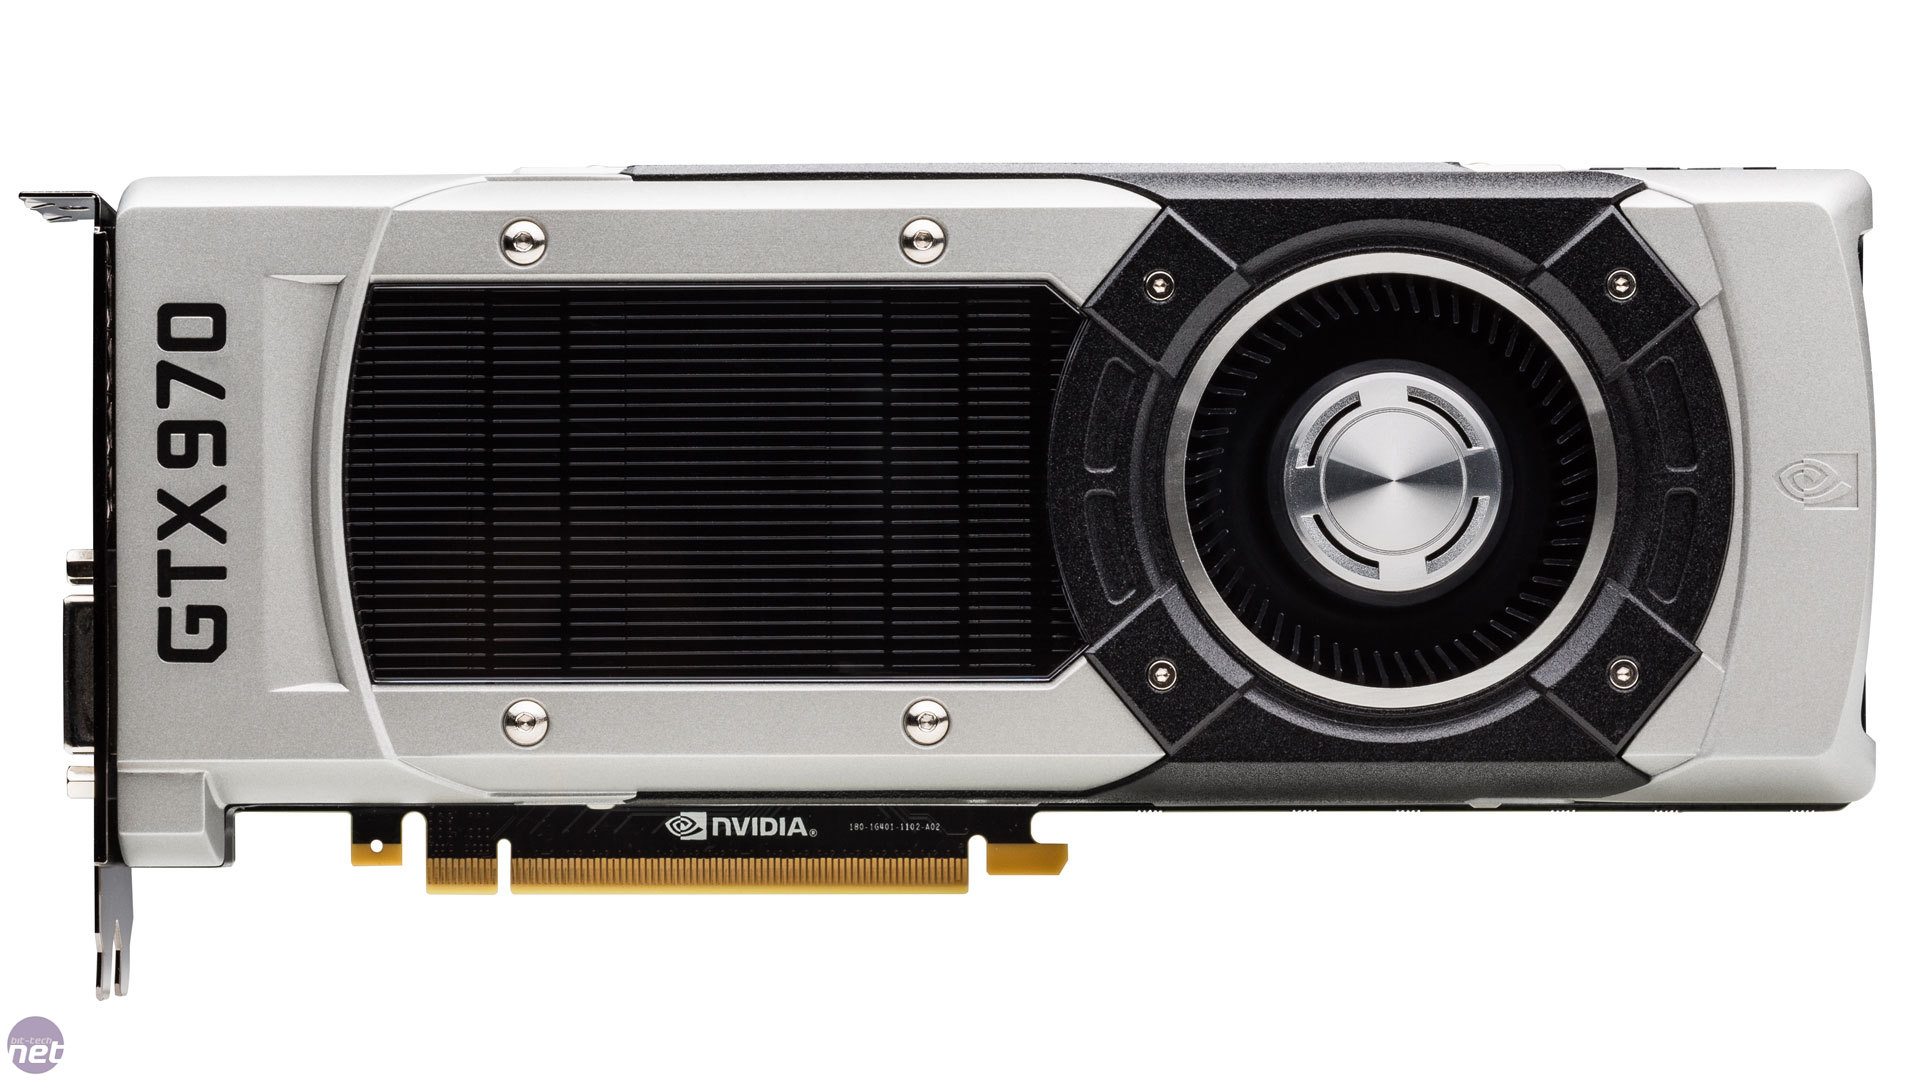 GeForce GTX 970 é a placa mais usada entre jogadores do Steam